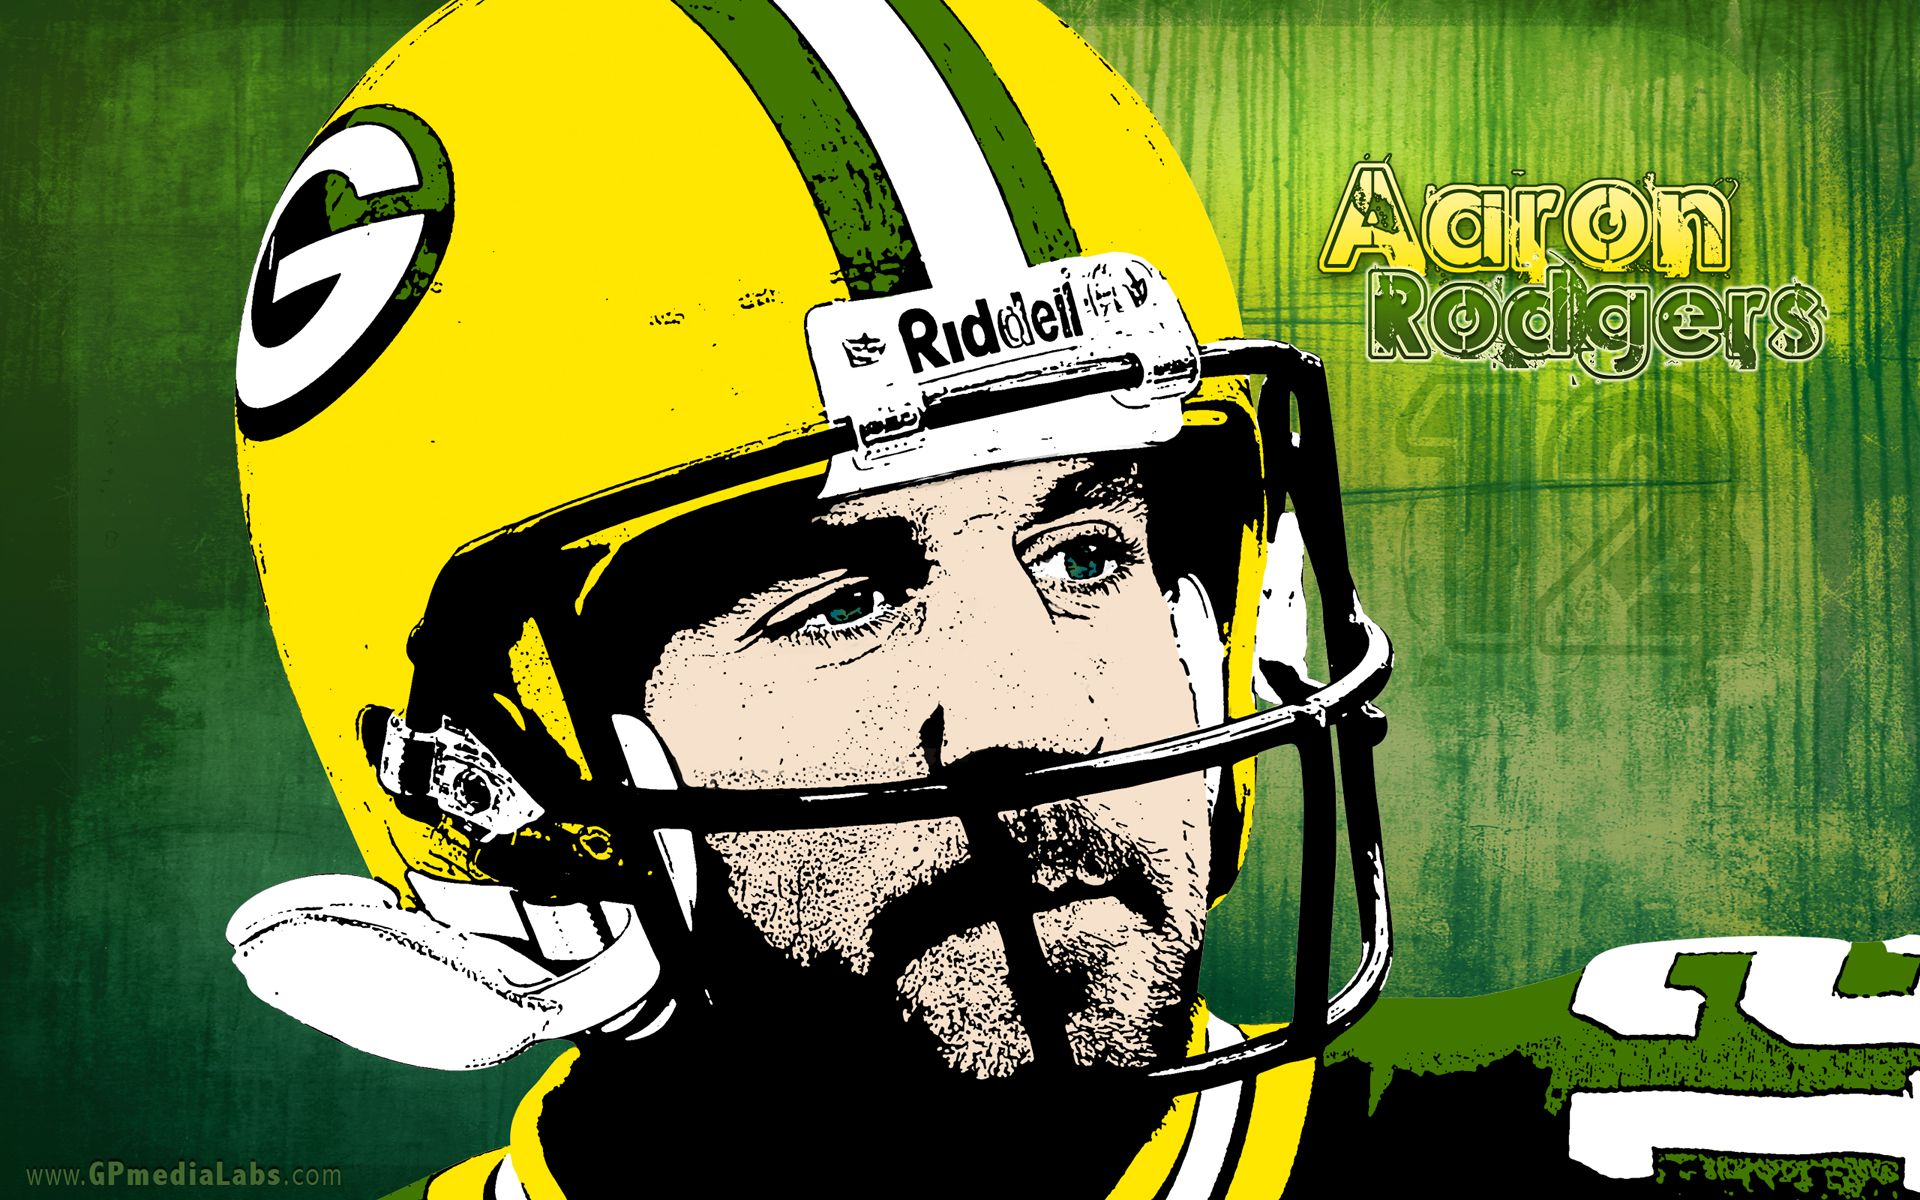 Green Bay Packers Glitter Graphics Wallpaper Packers Green Stores Logo Rodgers Aaron Graphics Green Bay Packers Green Bay Packers Wallpaper Green